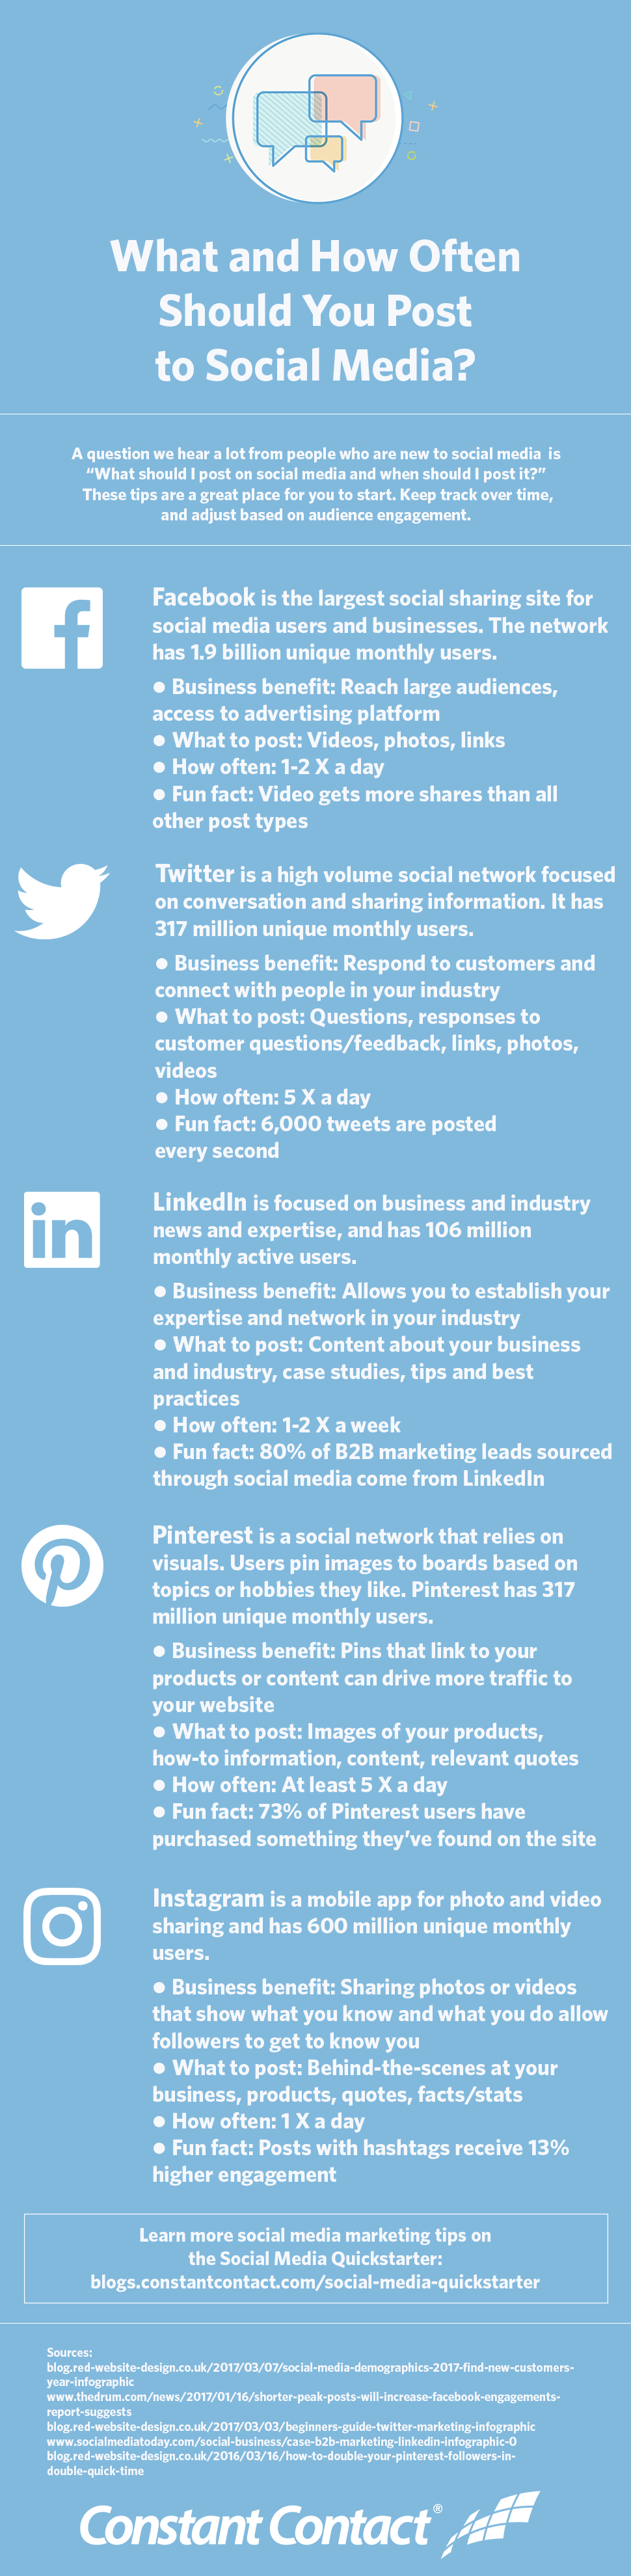 How To Create A Social Media Posting Schedule Constant Contact Blogs Social Media Infographic Social Media Posting Schedule Social Media Calendar